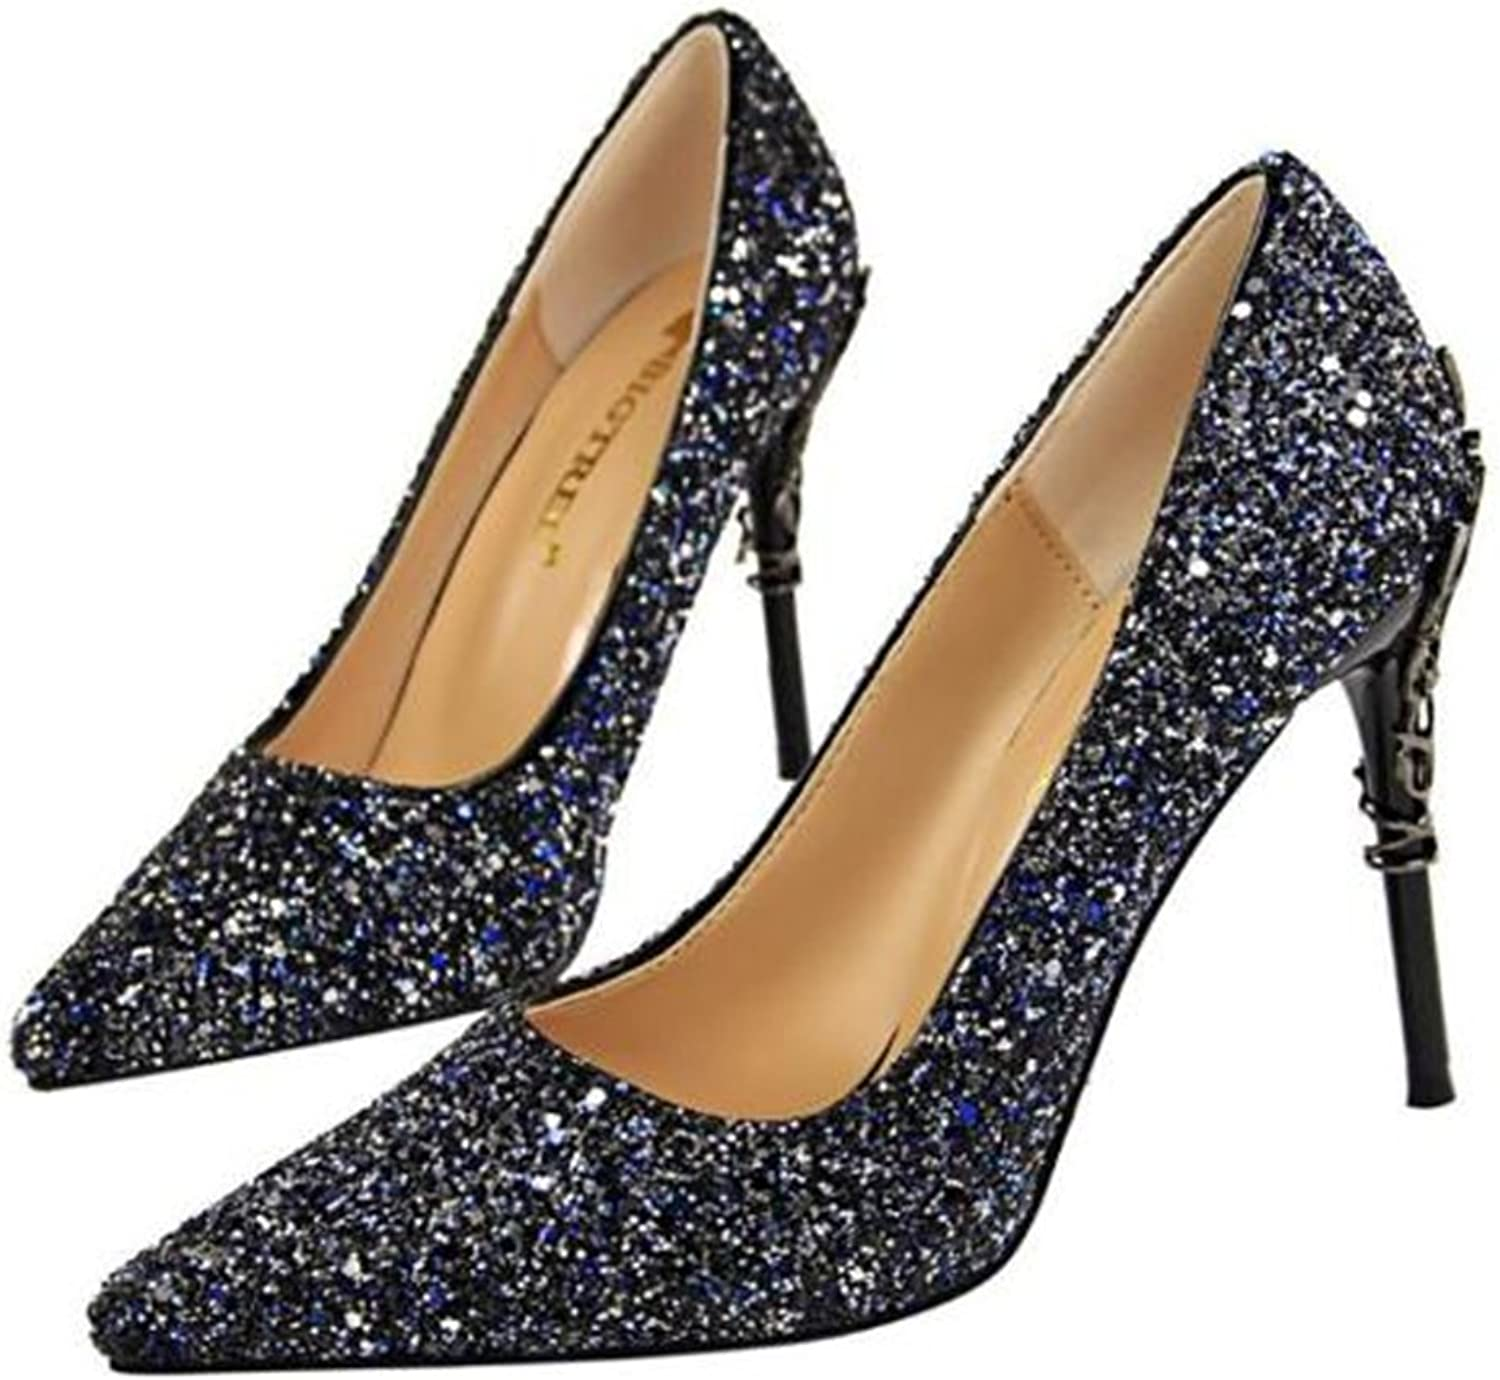 Coollight Metal with Sequined High Heels